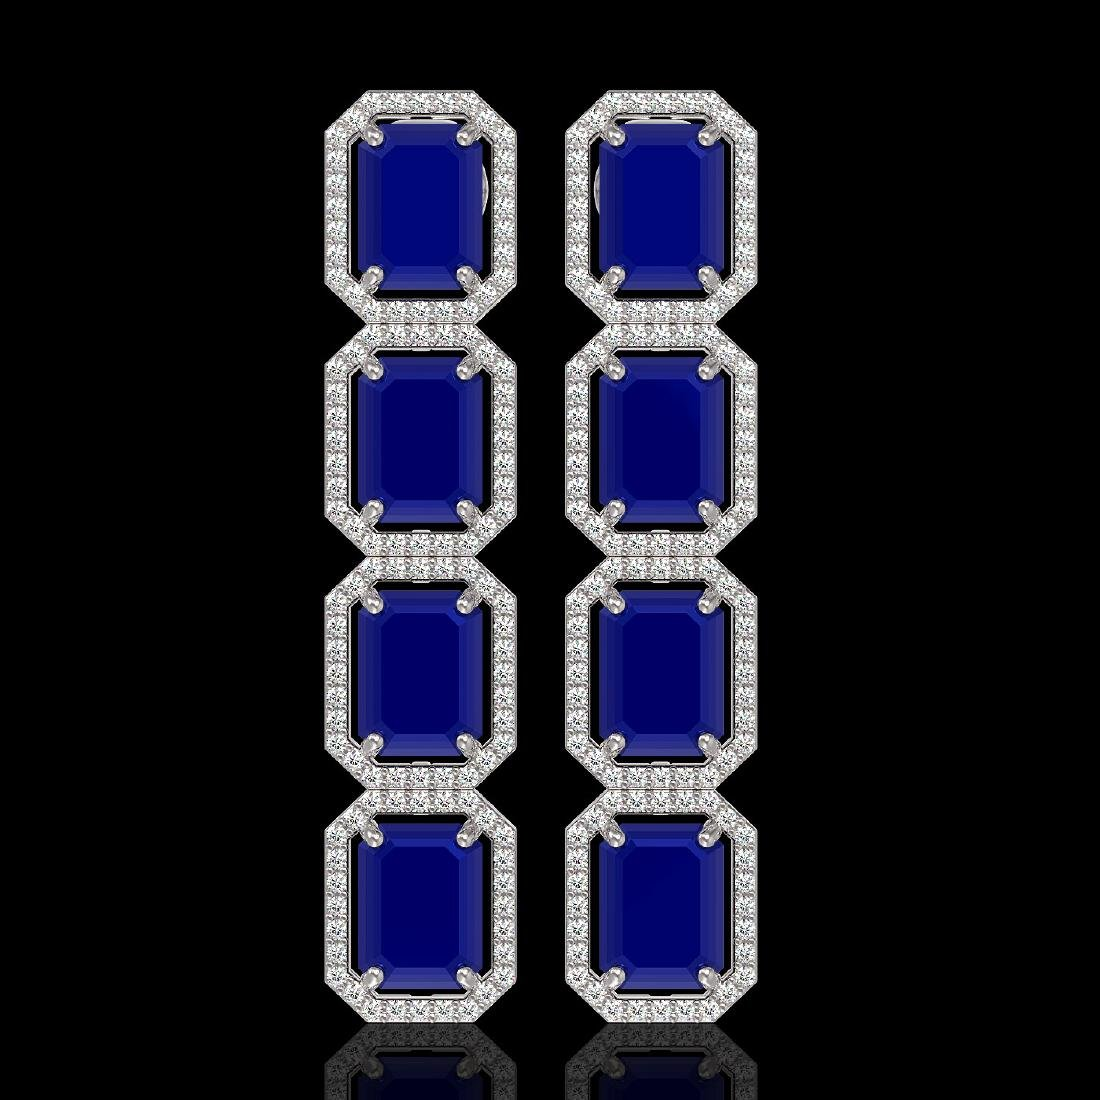 20.59 CTW Sapphire & Diamond Halo Earrings 10K White